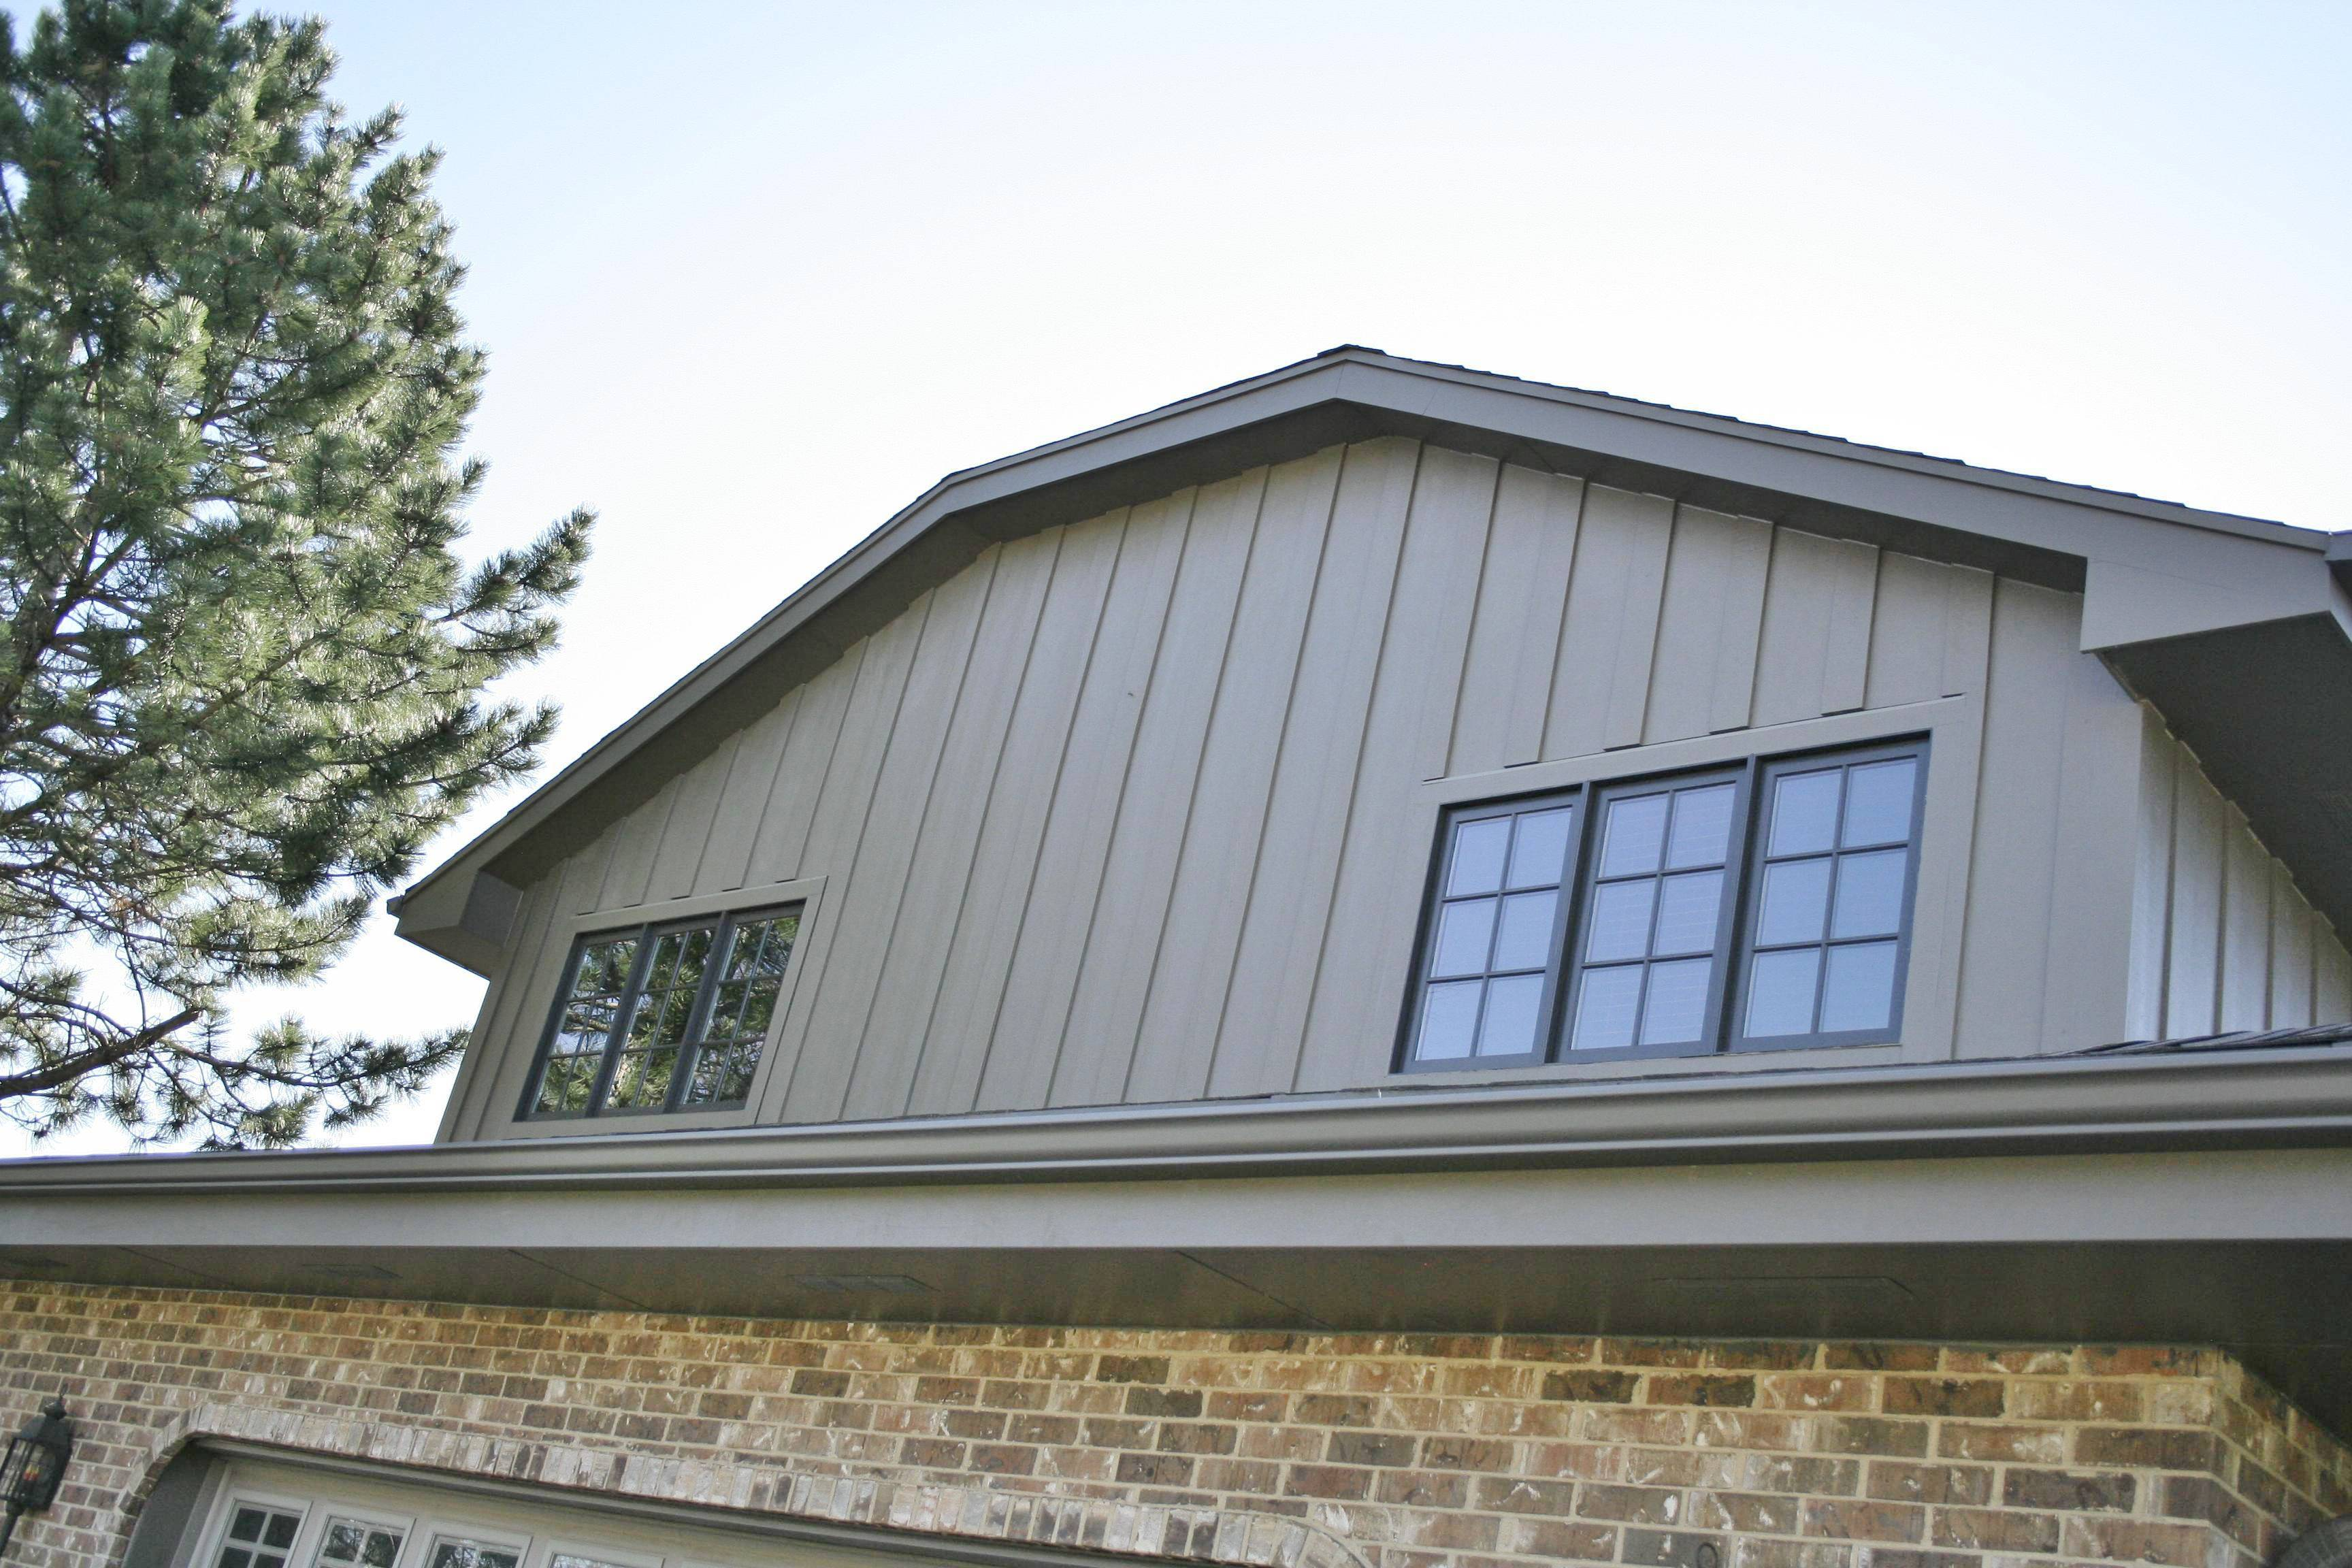 Vertical Siding Using Harpanel Timberbark Fiber Cement With Alside Aluminum Gutters In Orland Park